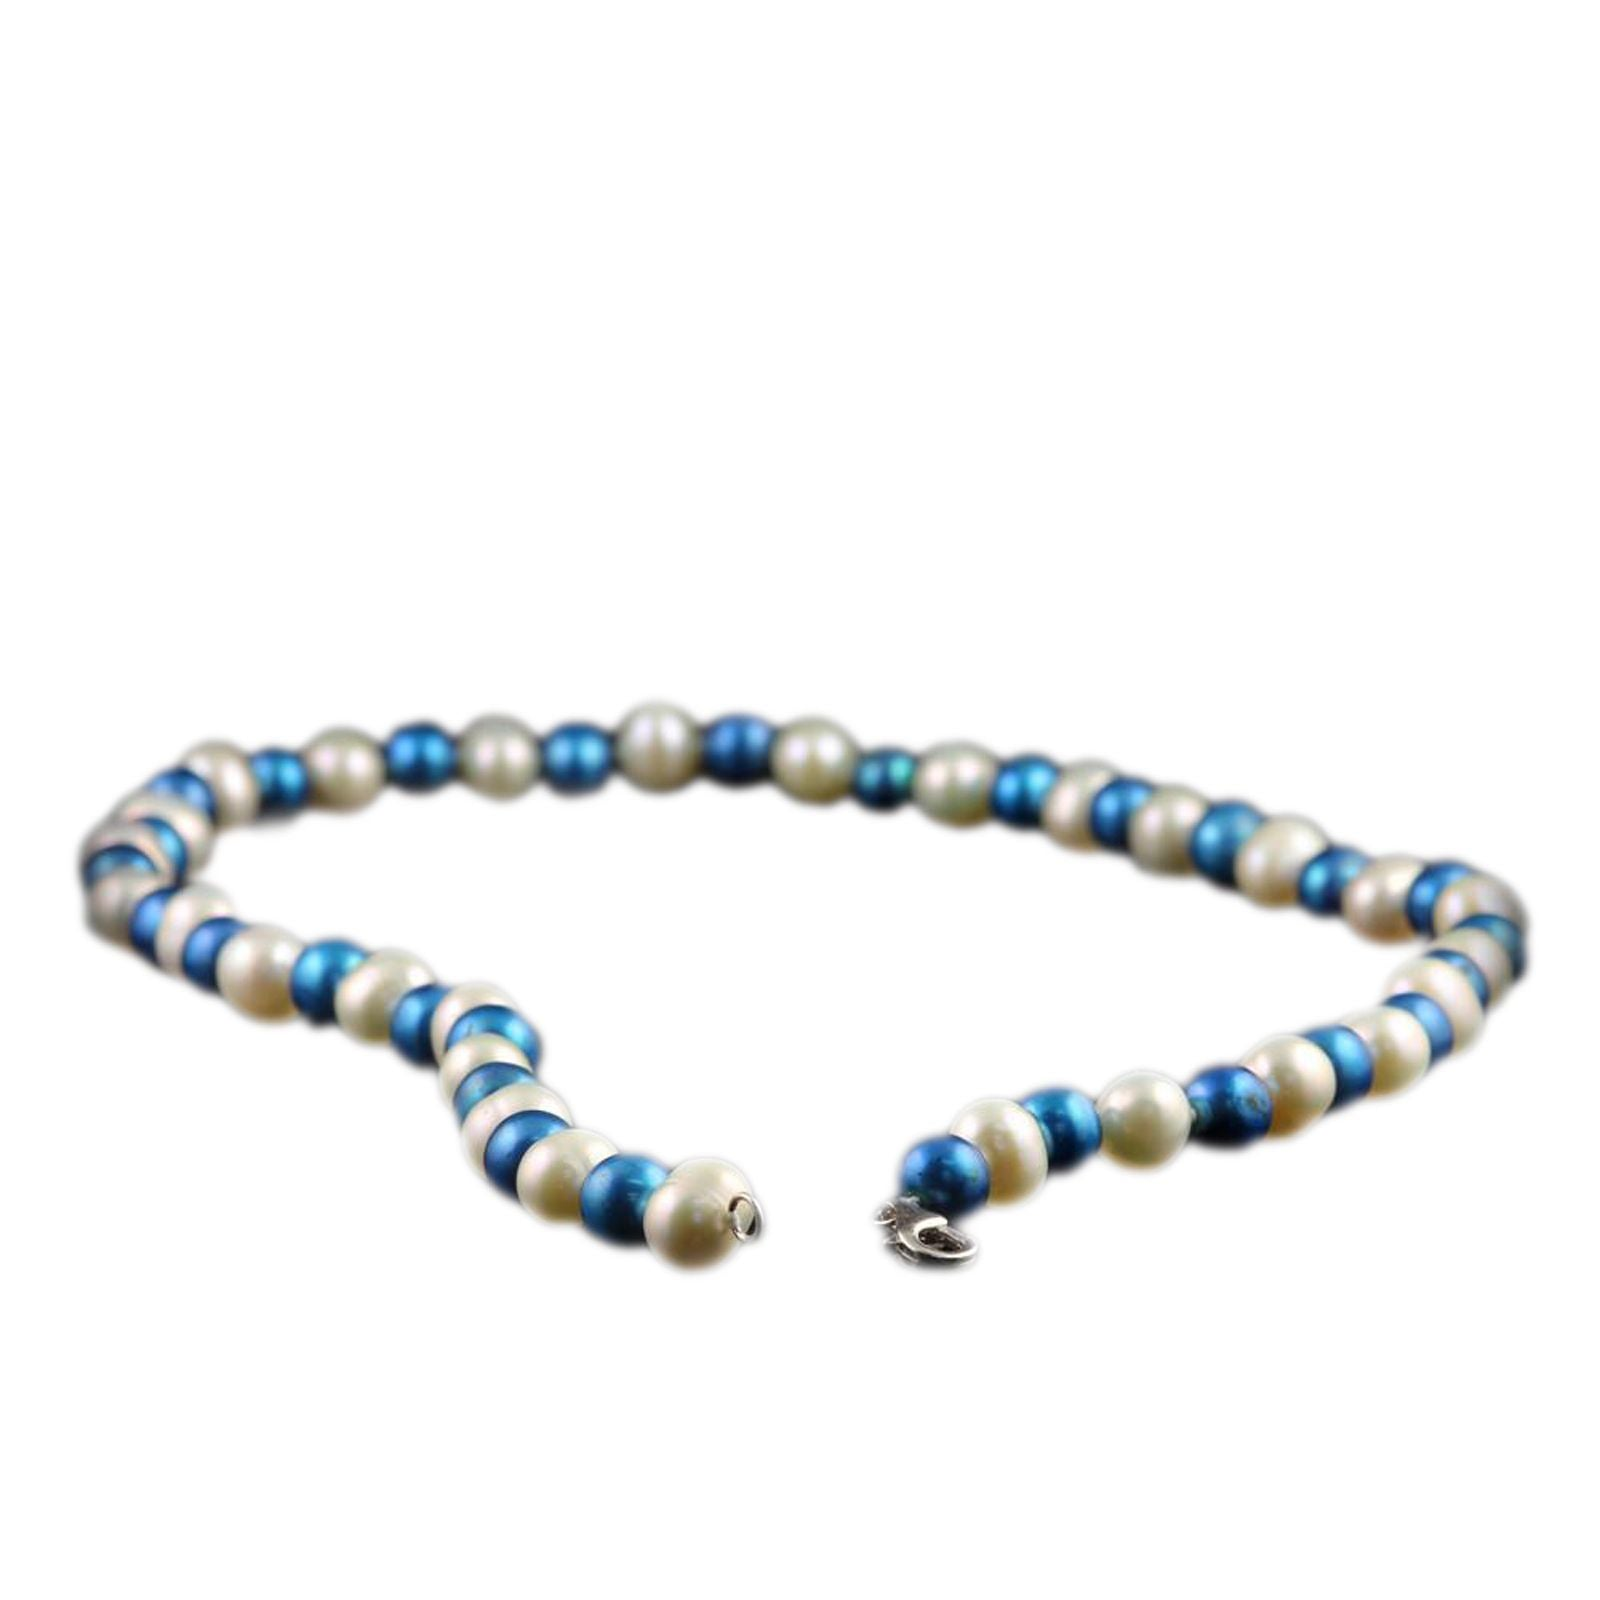 SPECIAL! Collegiate University of Kentucky Blue and White Pearl Necklace-2